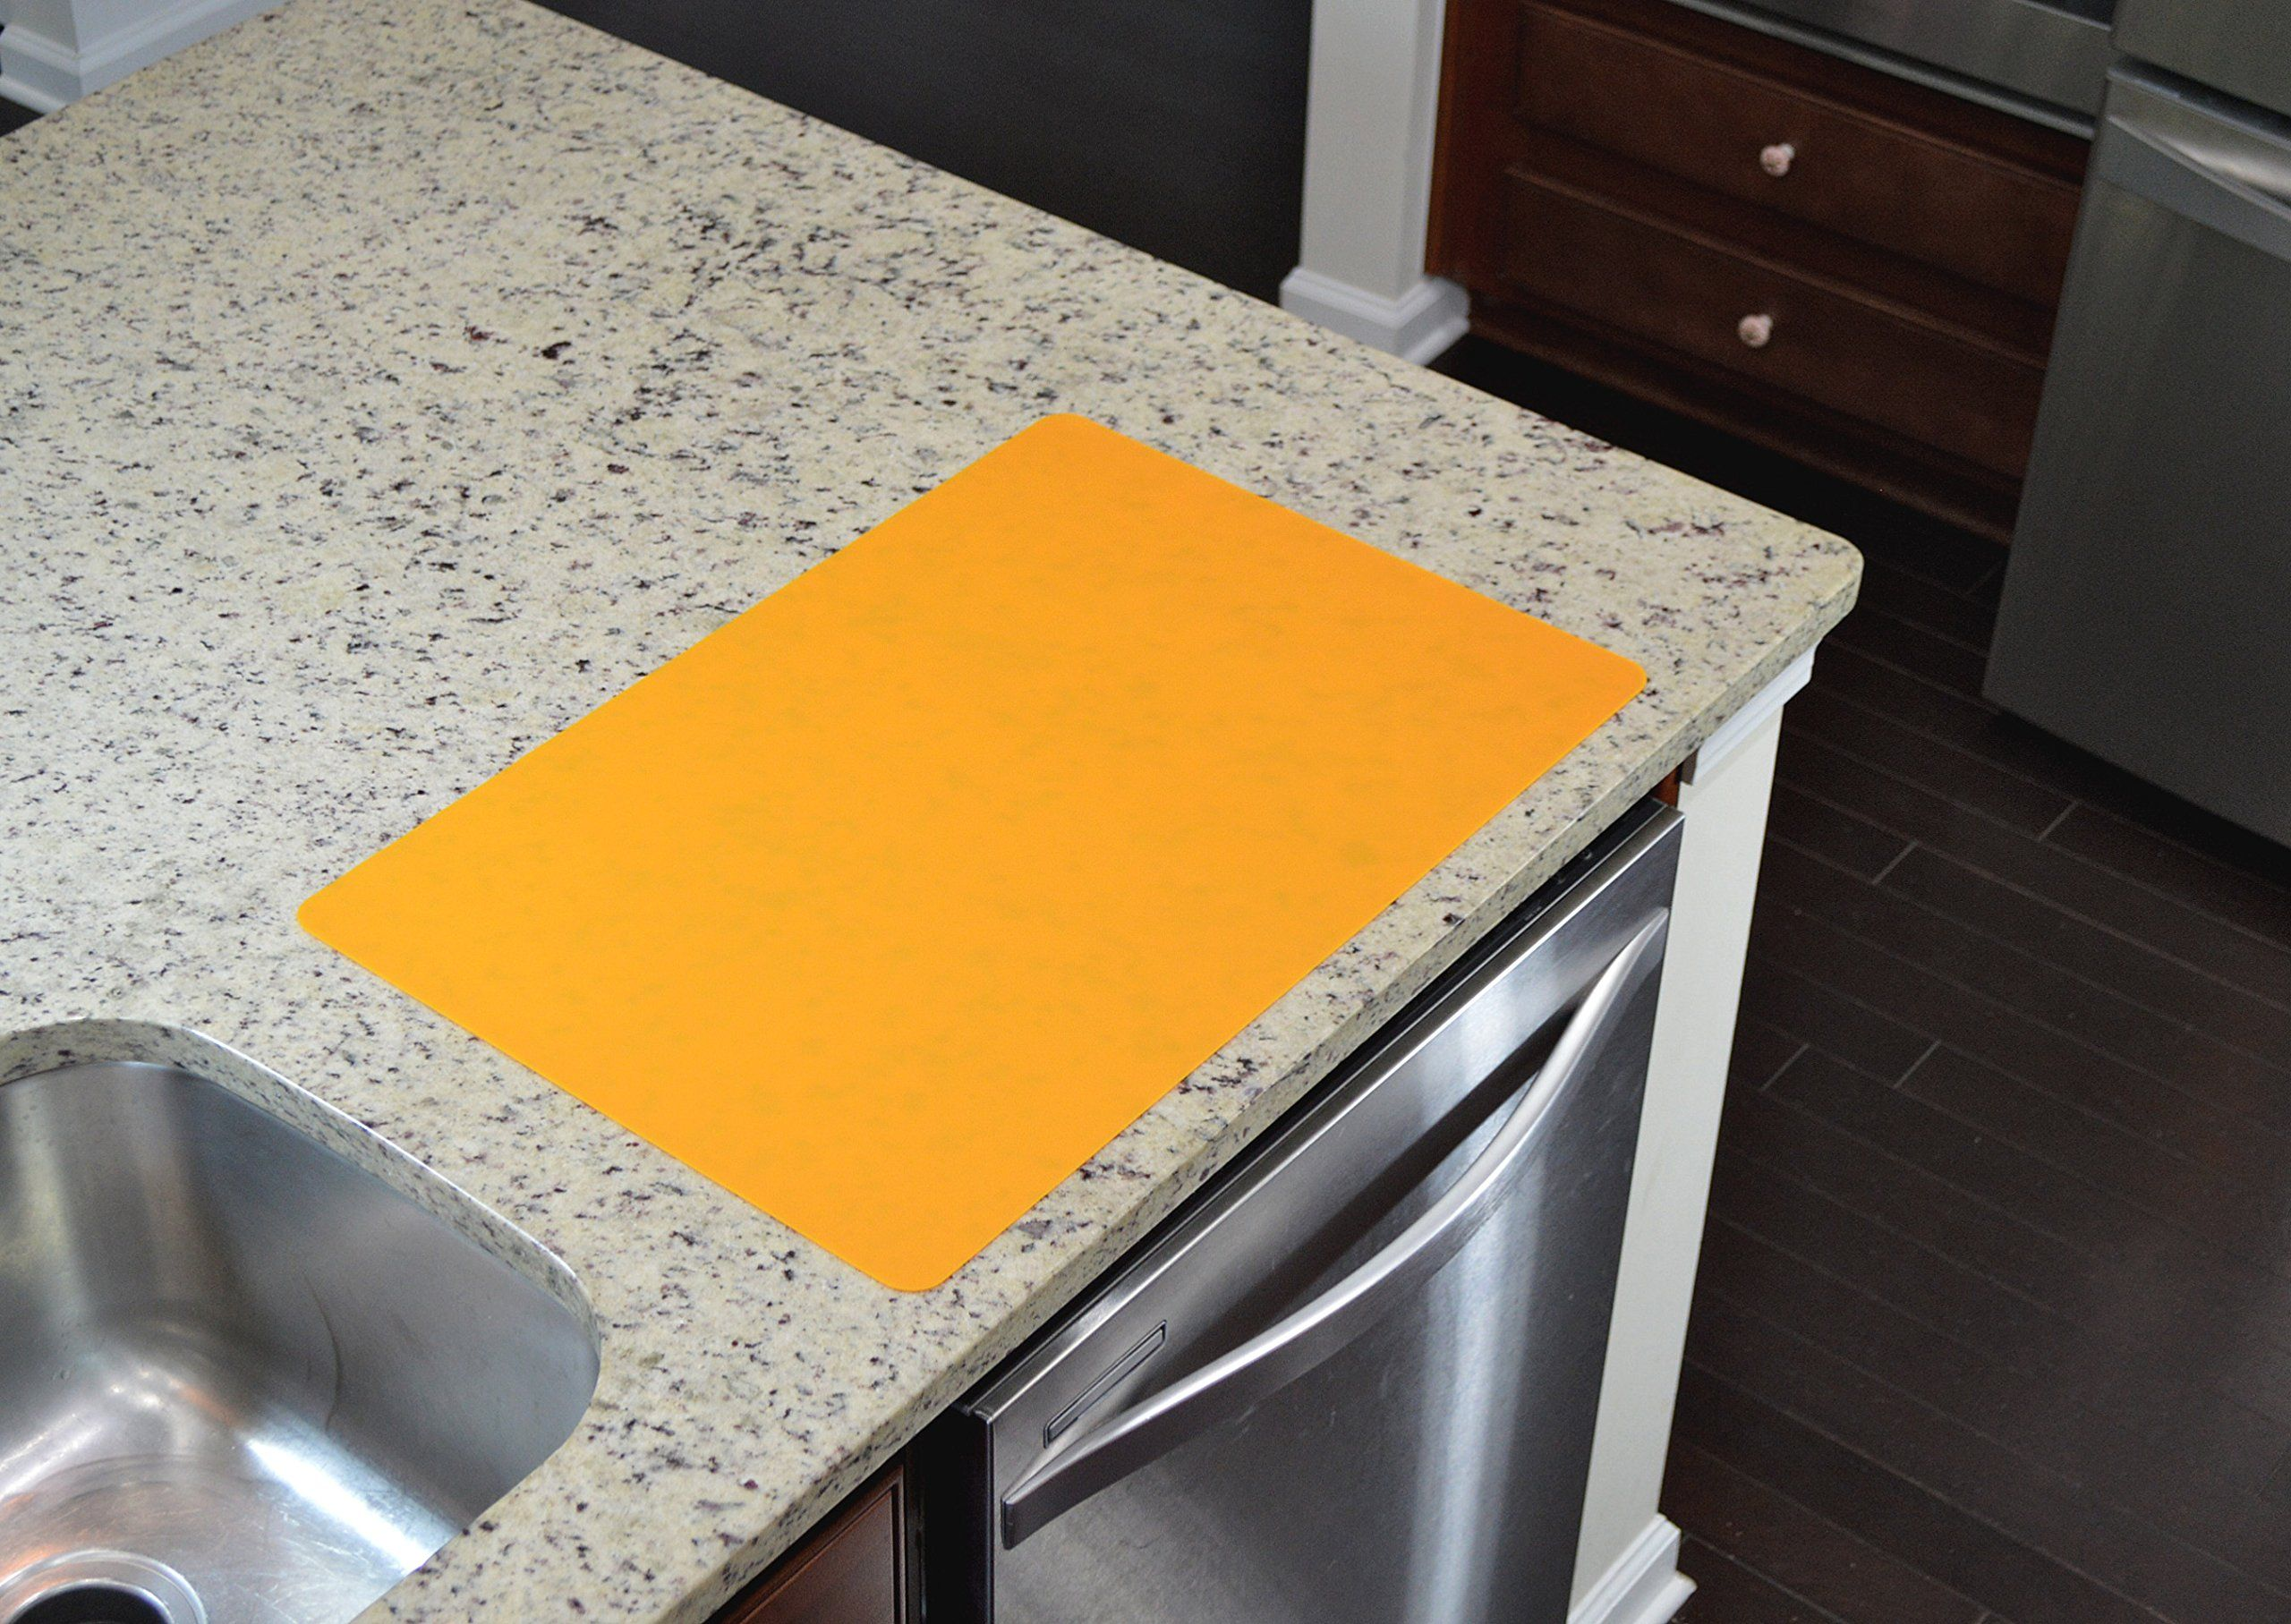 Gasare Extra Large Silicone Mats Countertop Protection Heat